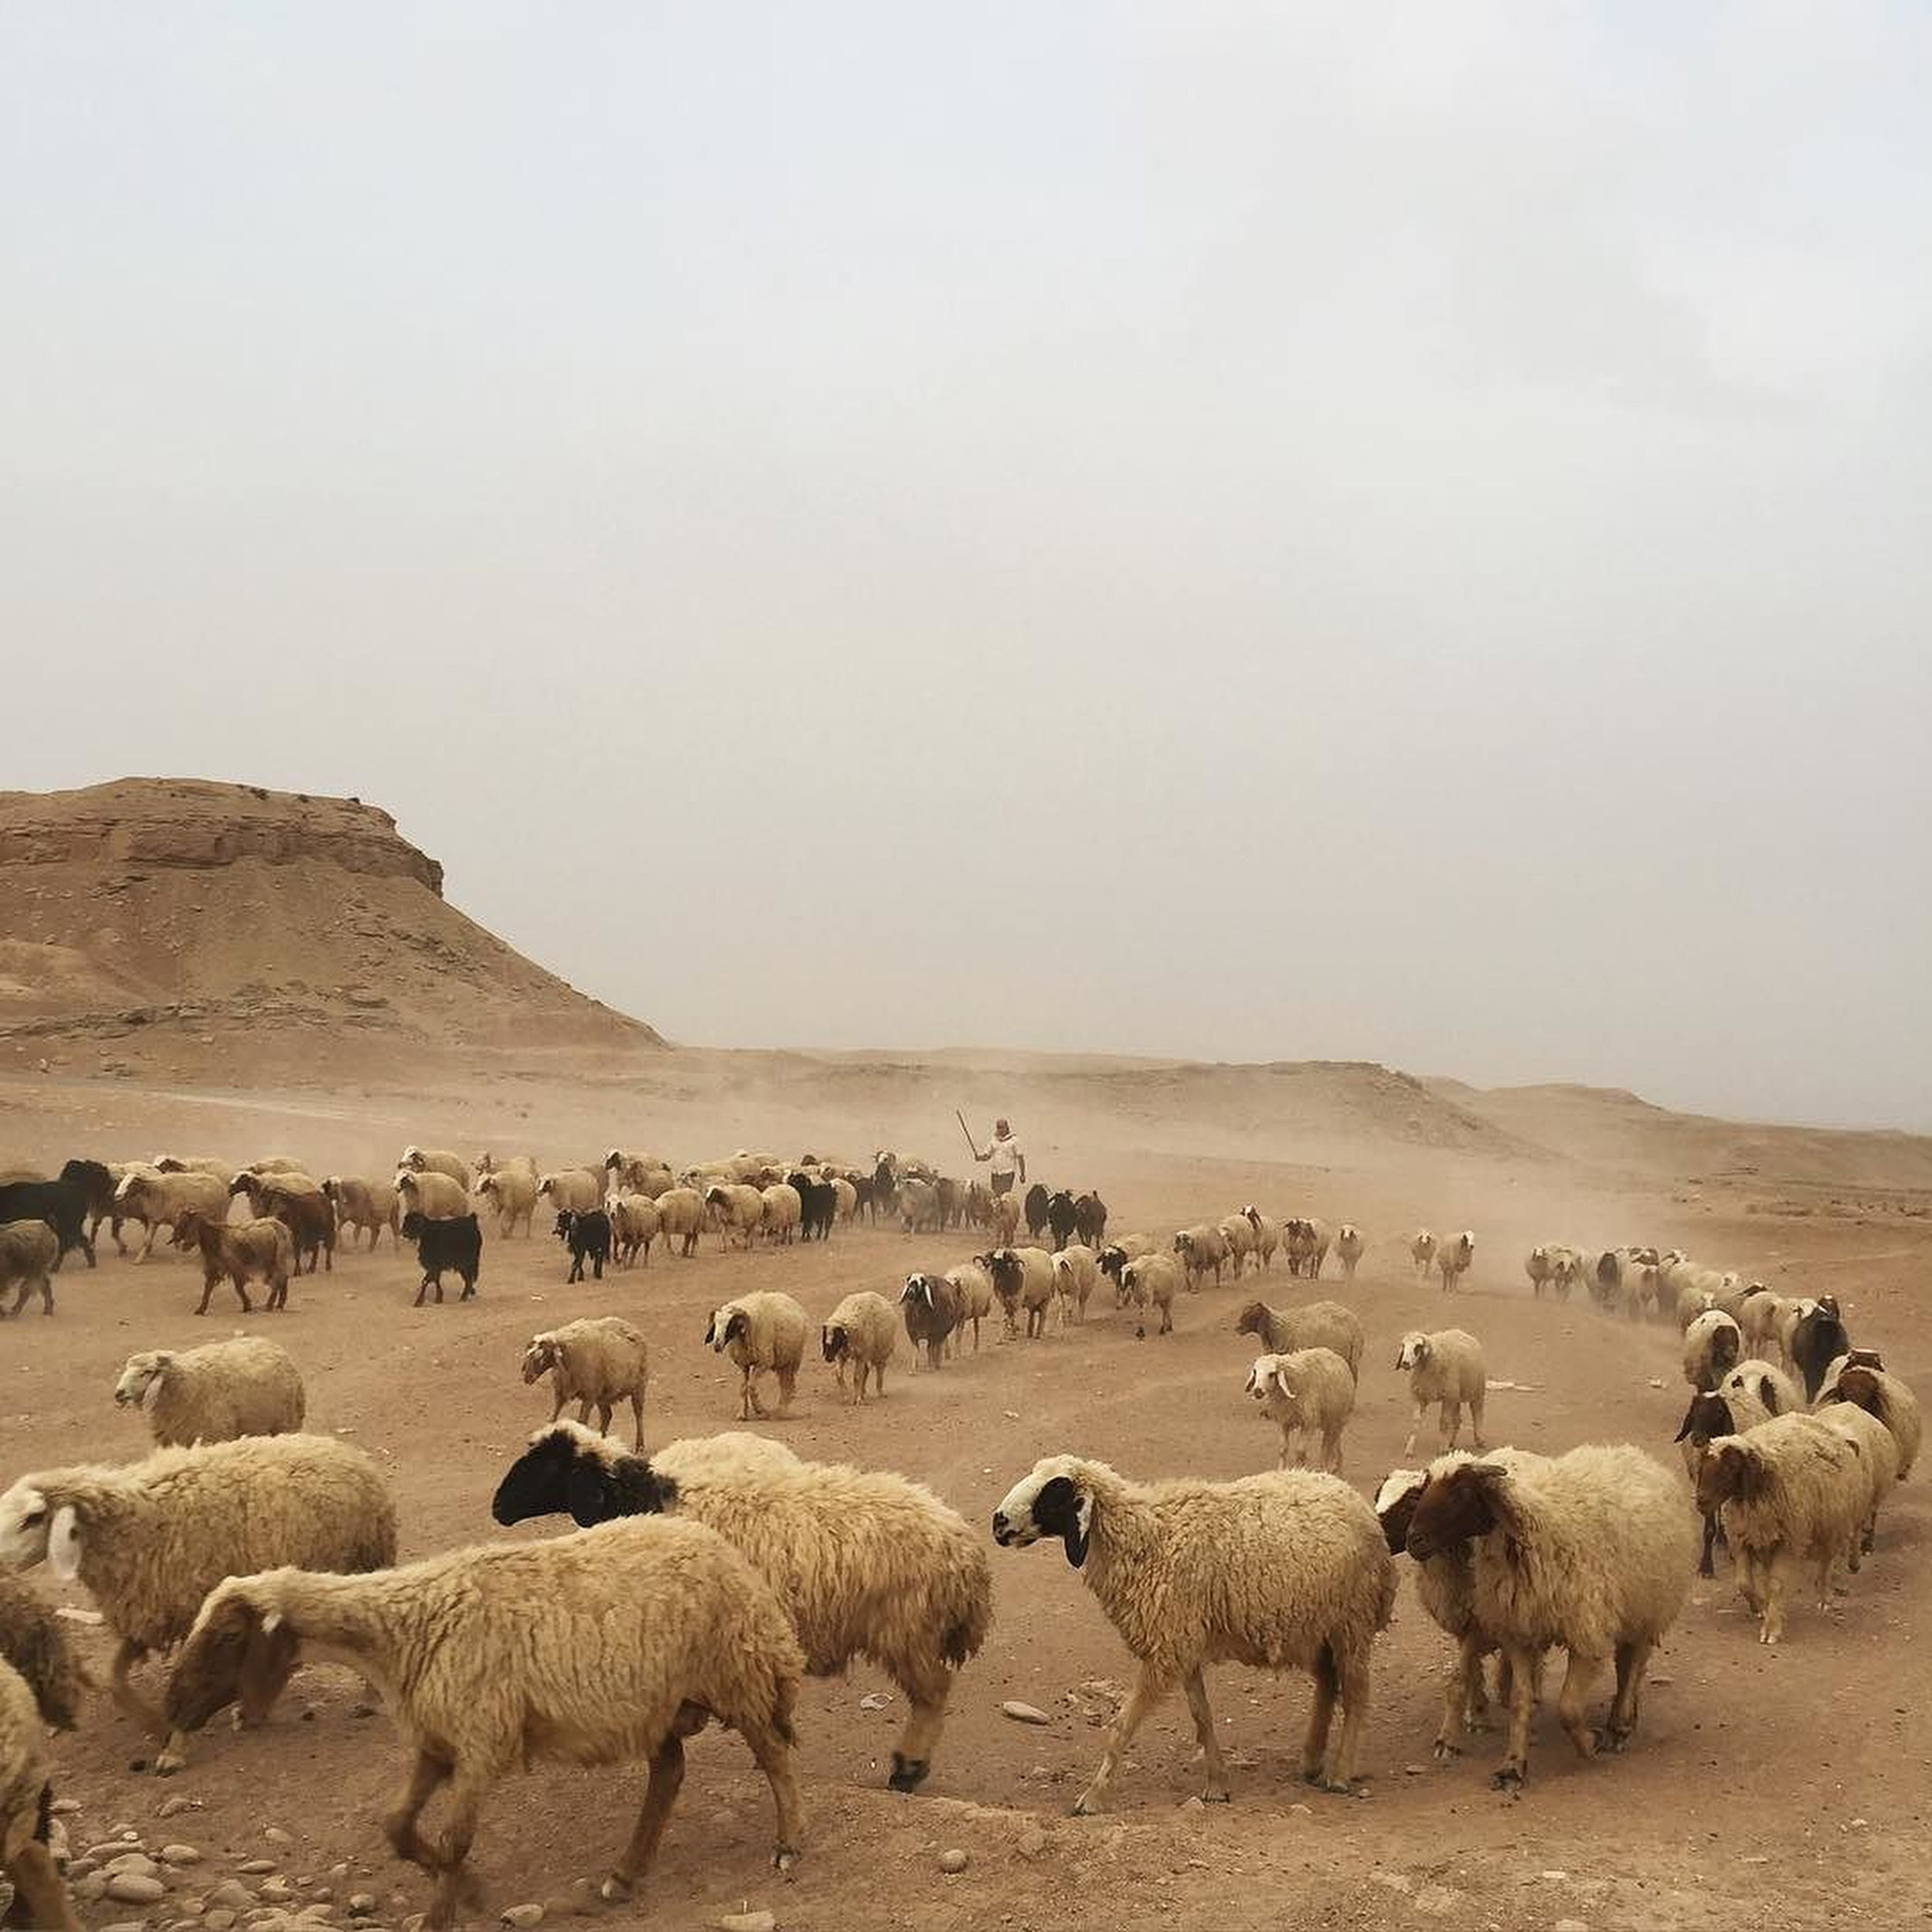 A sheep flock followed by their shepherd in Khanaqien, Diyala, Iraq. (Ahmad Mousa)